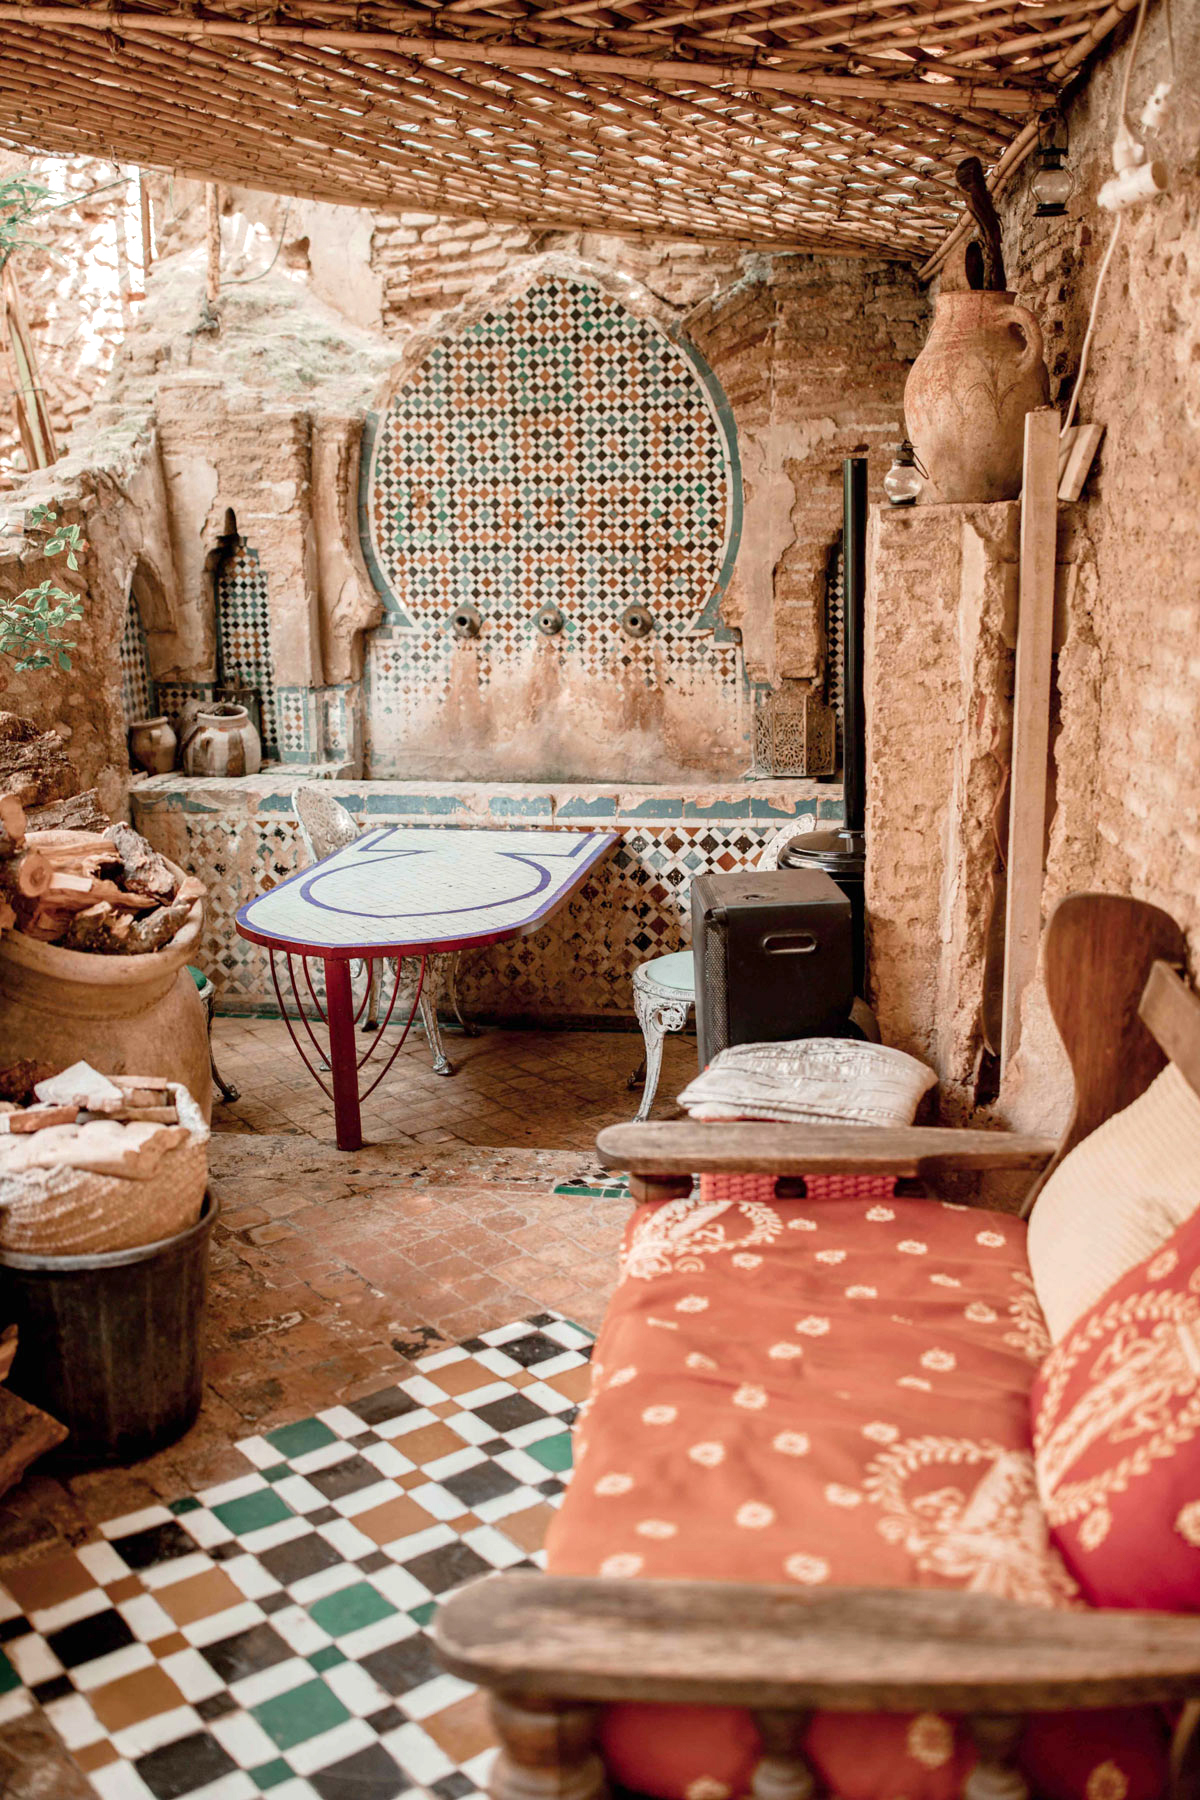 Top-things-to-do-in-Fez-Bucket-list-kelseyinlondon-Kelsey-Heinrichs--What-to-do-in-Fez--Where-to-go-in-Fez-top-places-in-Fez-ruined-gardens